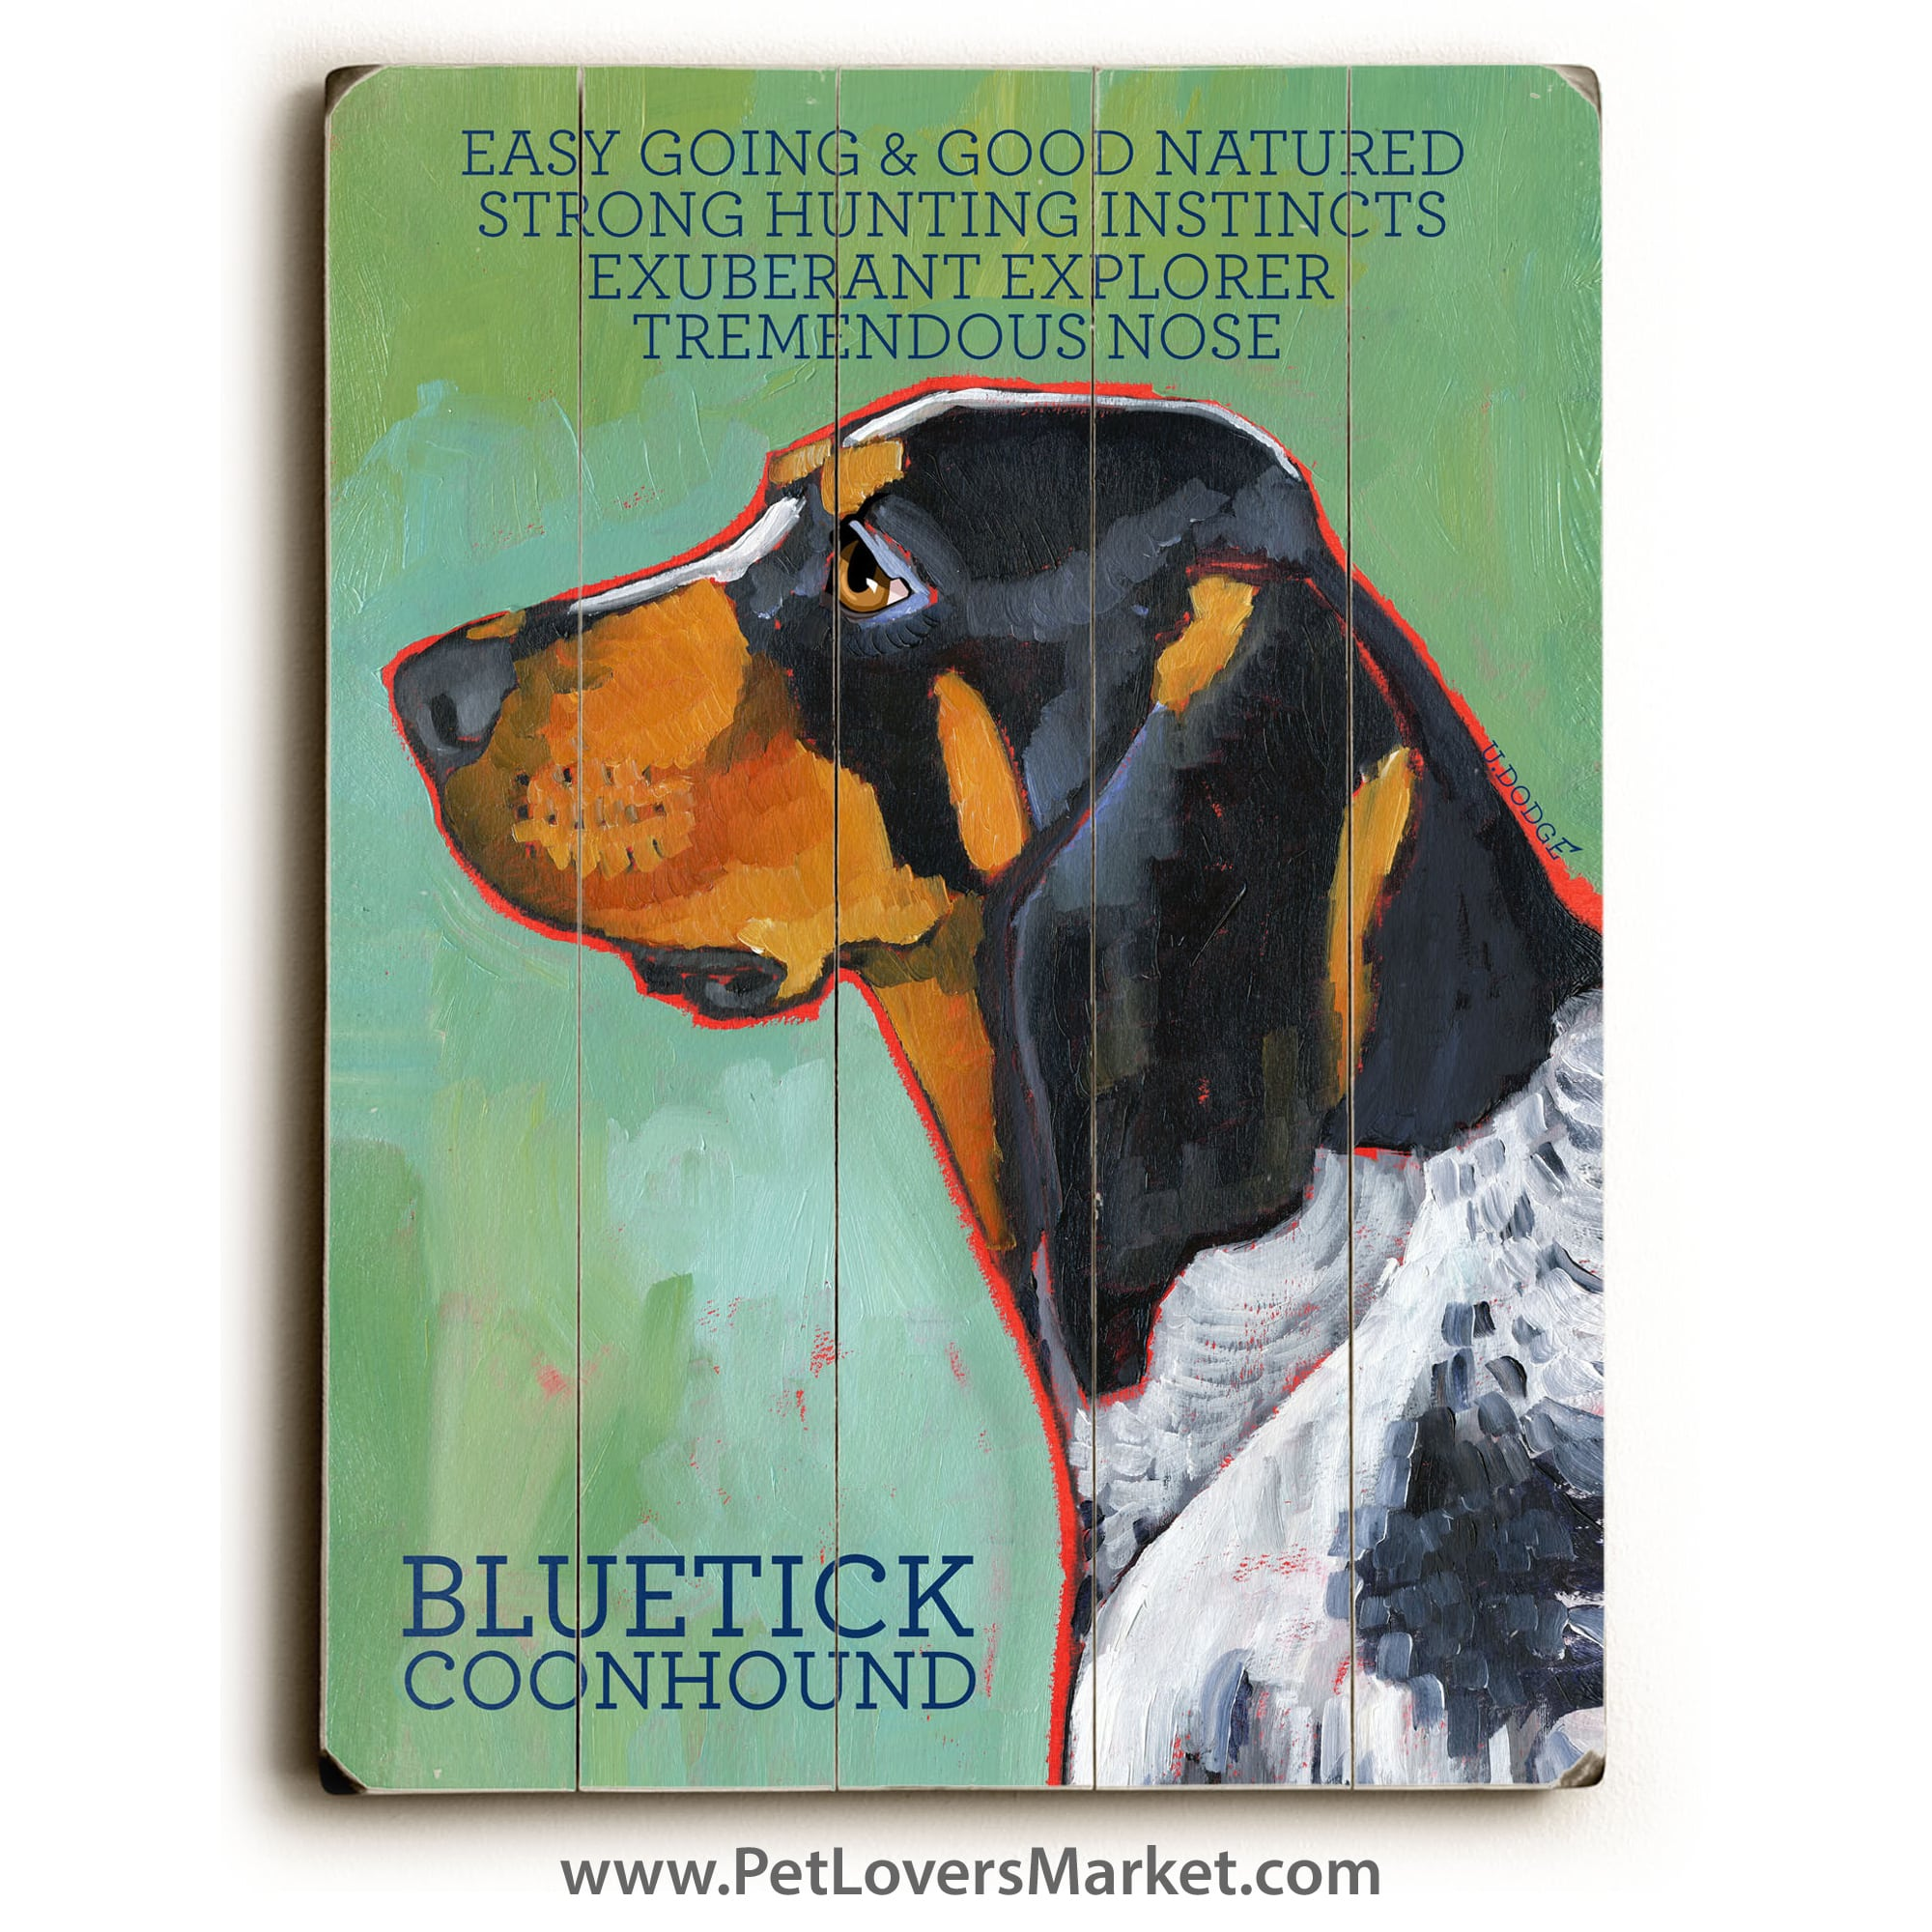 Bluetick Coonhound: Dog Print on Wood